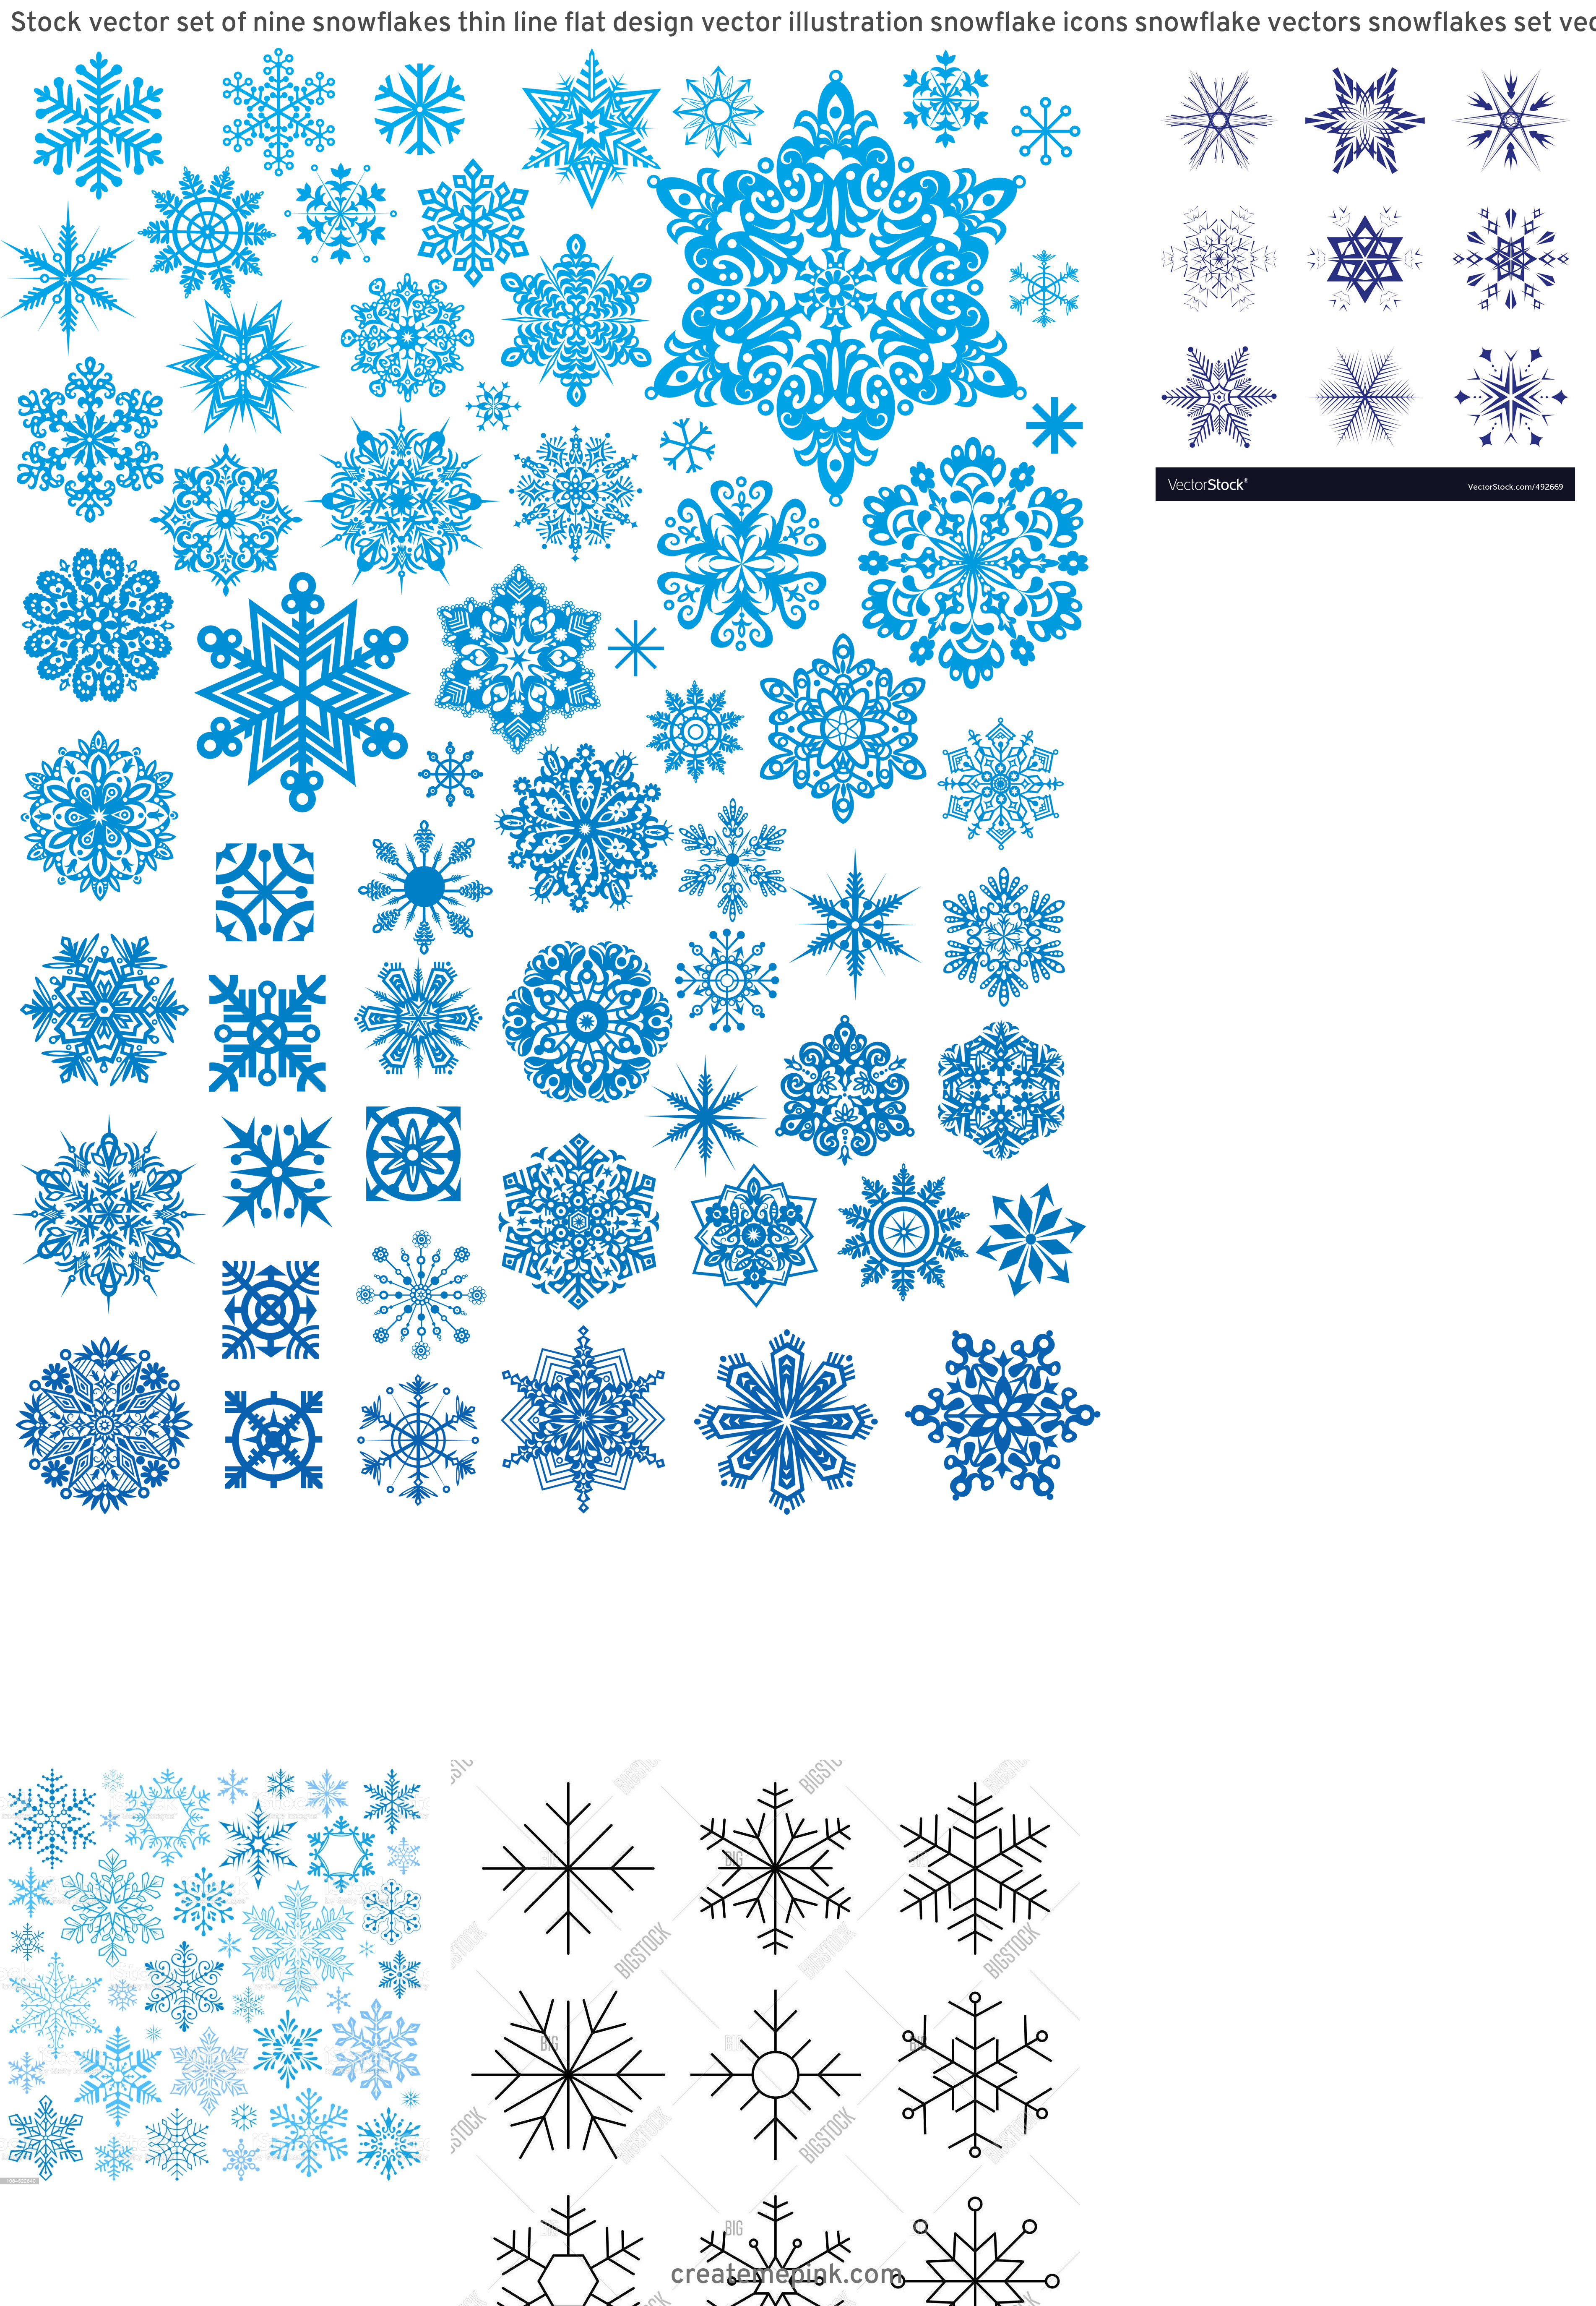 Free Vector Snow Flakes: Stock Vector Set Of Nine Snowflakes Thin Line Flat Design Vector Illustration Snowflake Icons Snowflake Vectors Snowflakes Set Vector Illustration